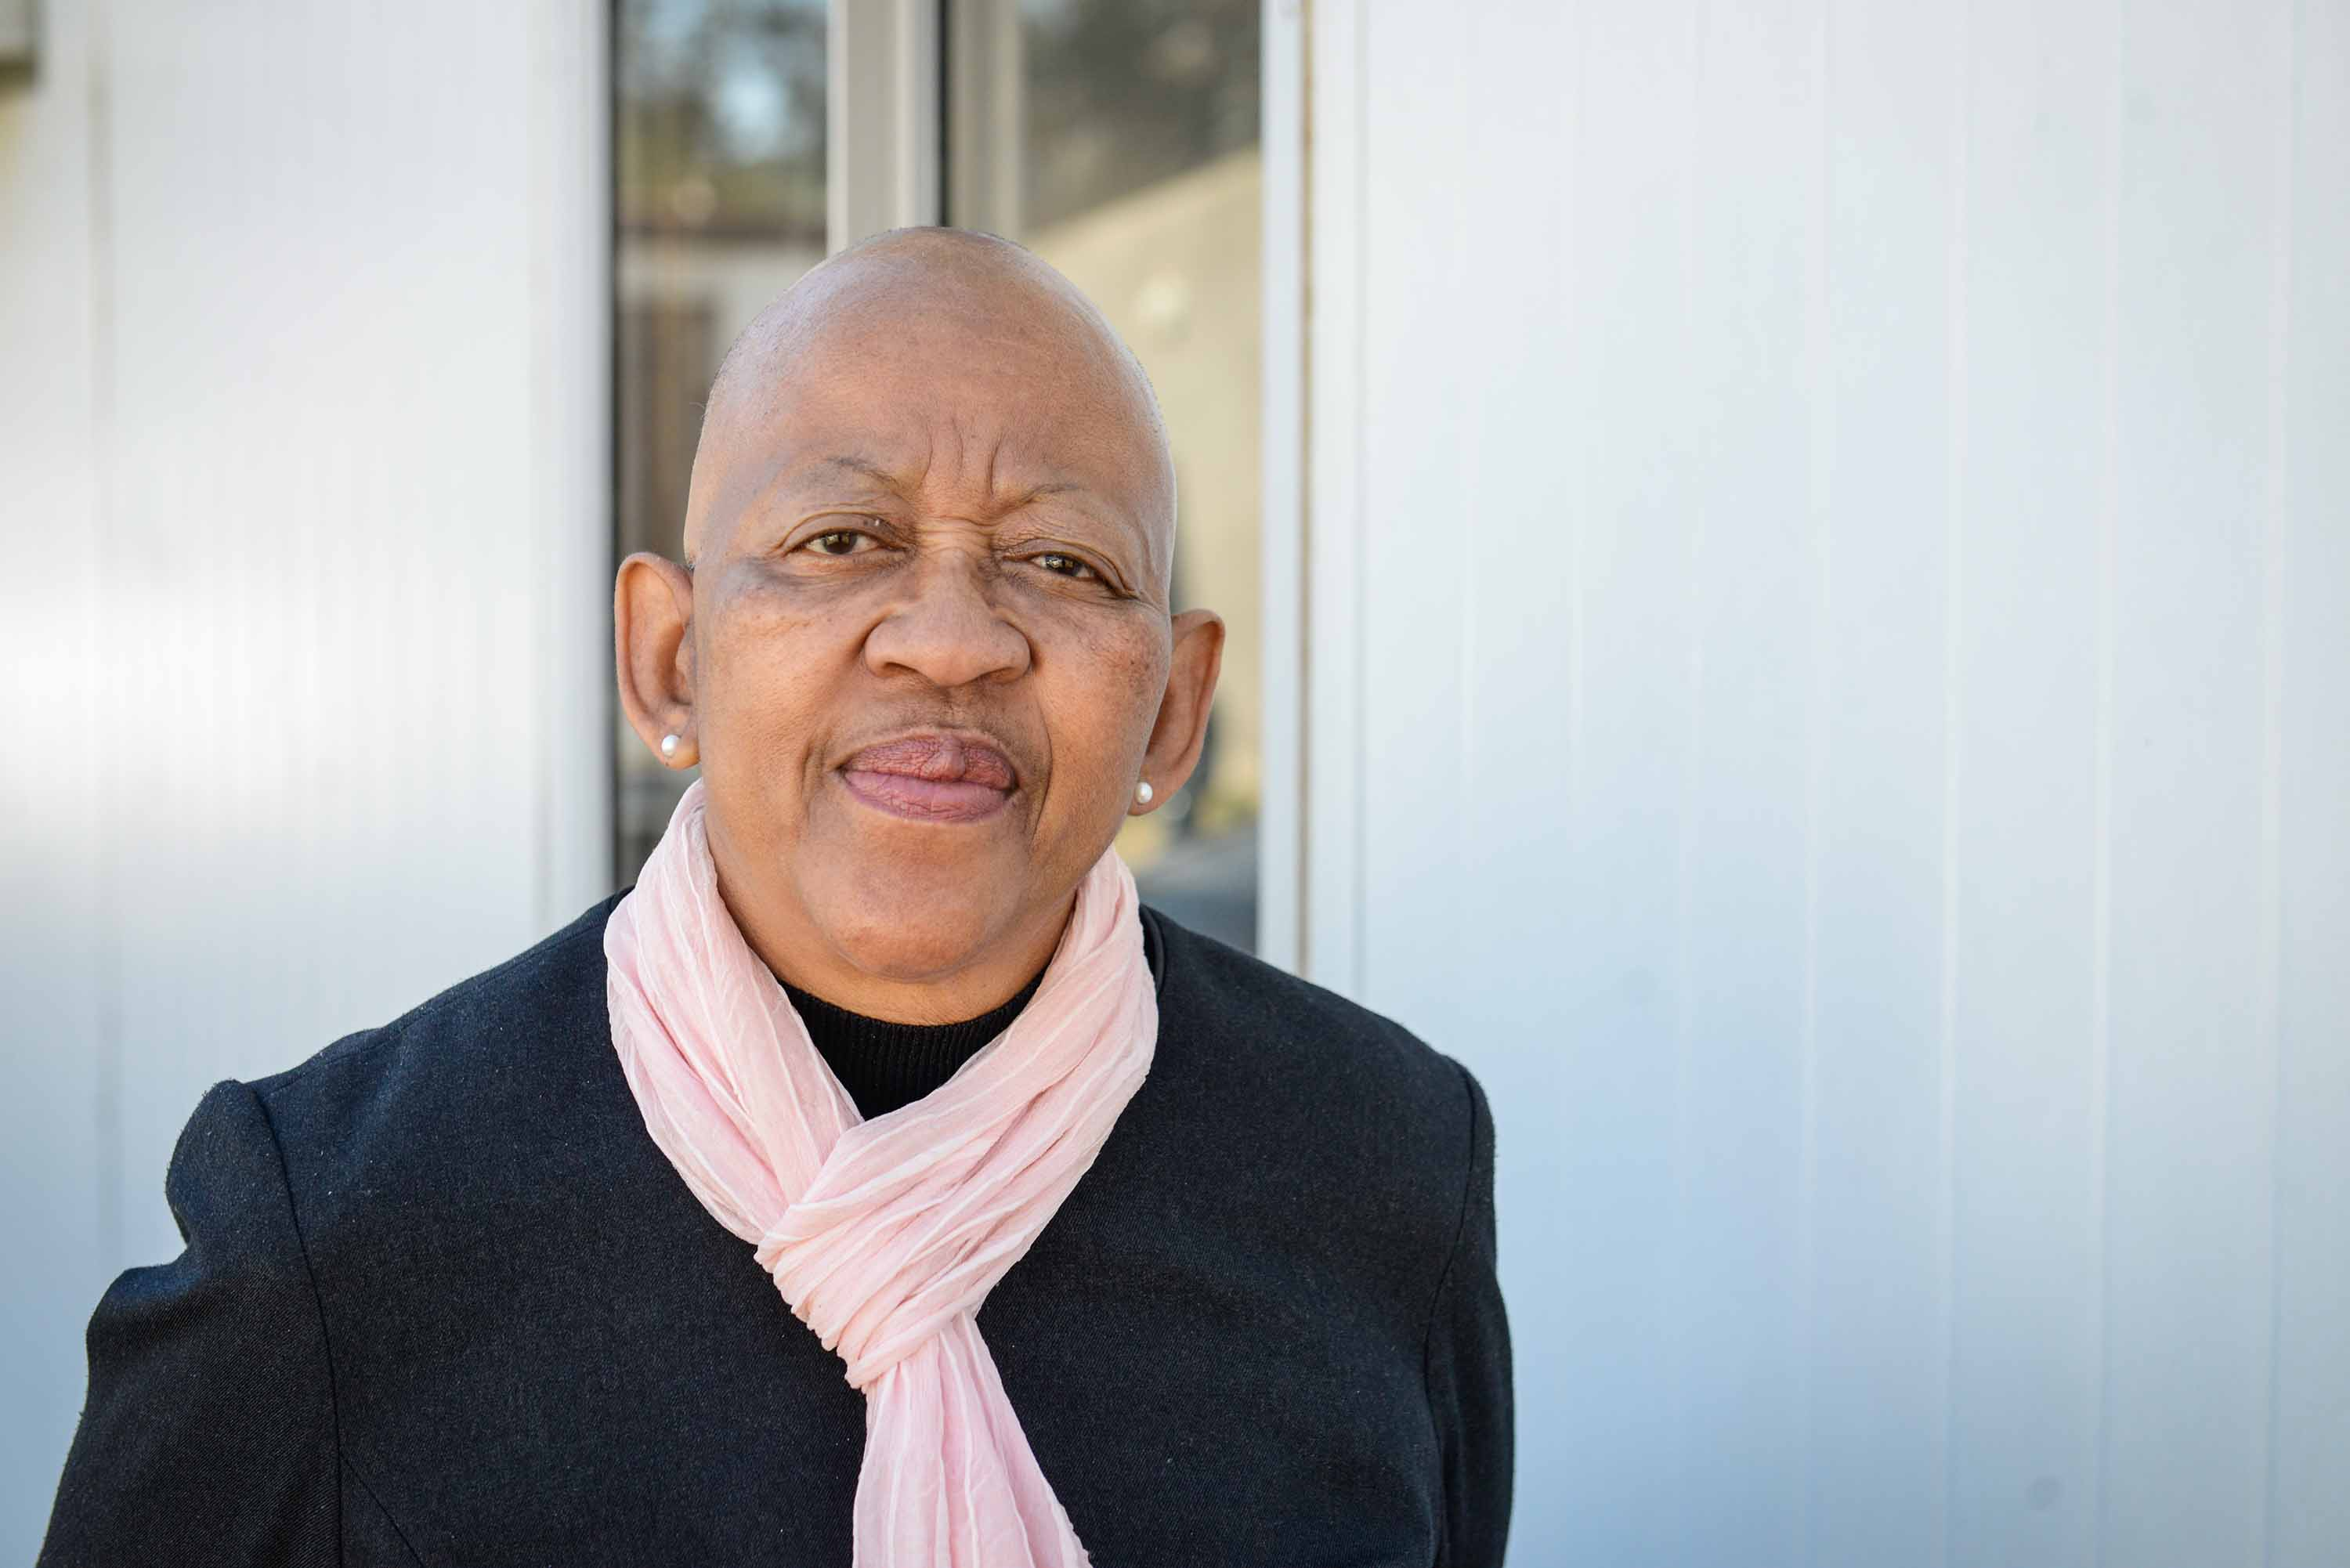 Like Masupha, Kuena Thabane is frustrated by the current chieftainship law.